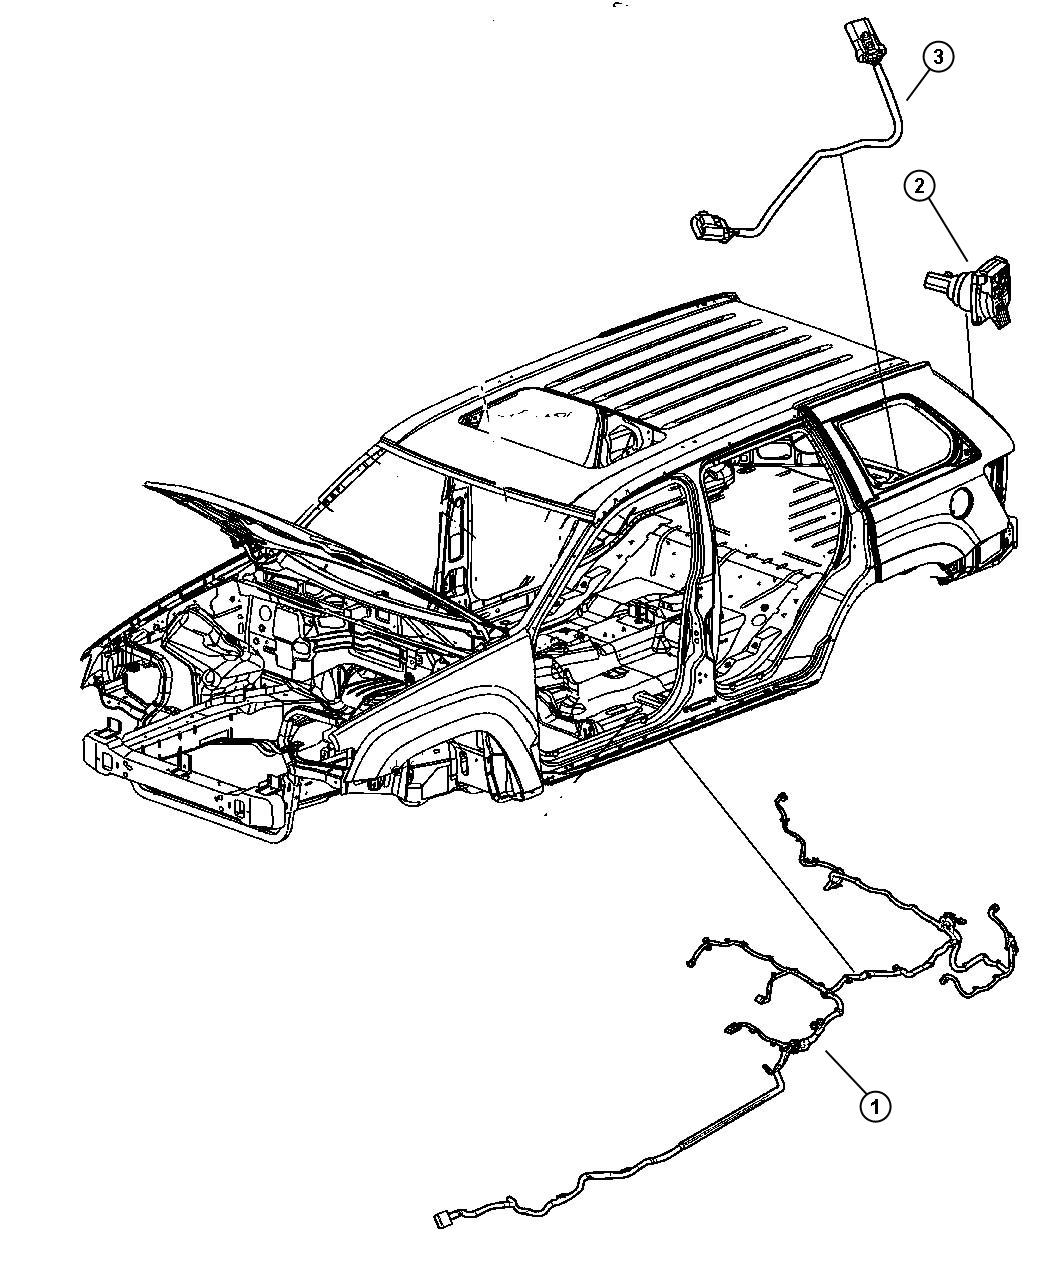 Jeep Grand Cherokee Wiring Underbody Xgm Tow Dhx